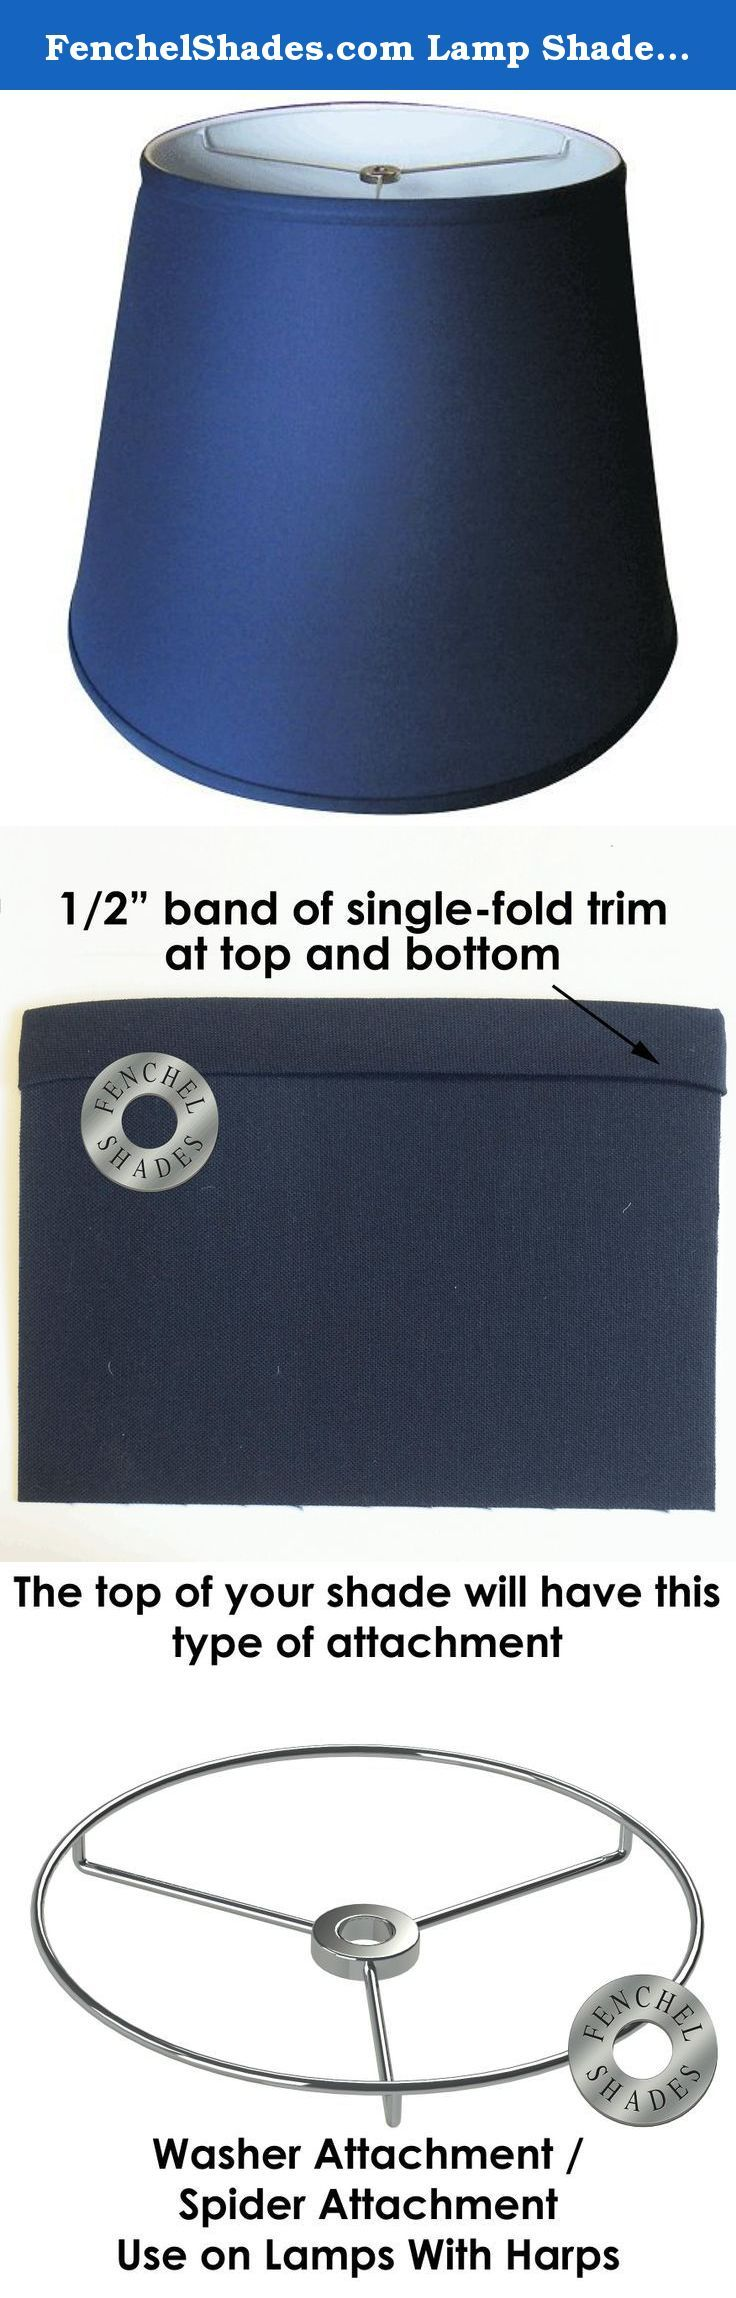 """FenchelShades.com Lamp Shade 11x17x13 Navy Blue Linen Fabric. """"The outside of this lamp shade is a beautiful navy blue linen fabric. The inside of the shade is white styrene. You may change the shape, size or covering of this lamp shade by visiting our web site www.fenchelshades.com."""